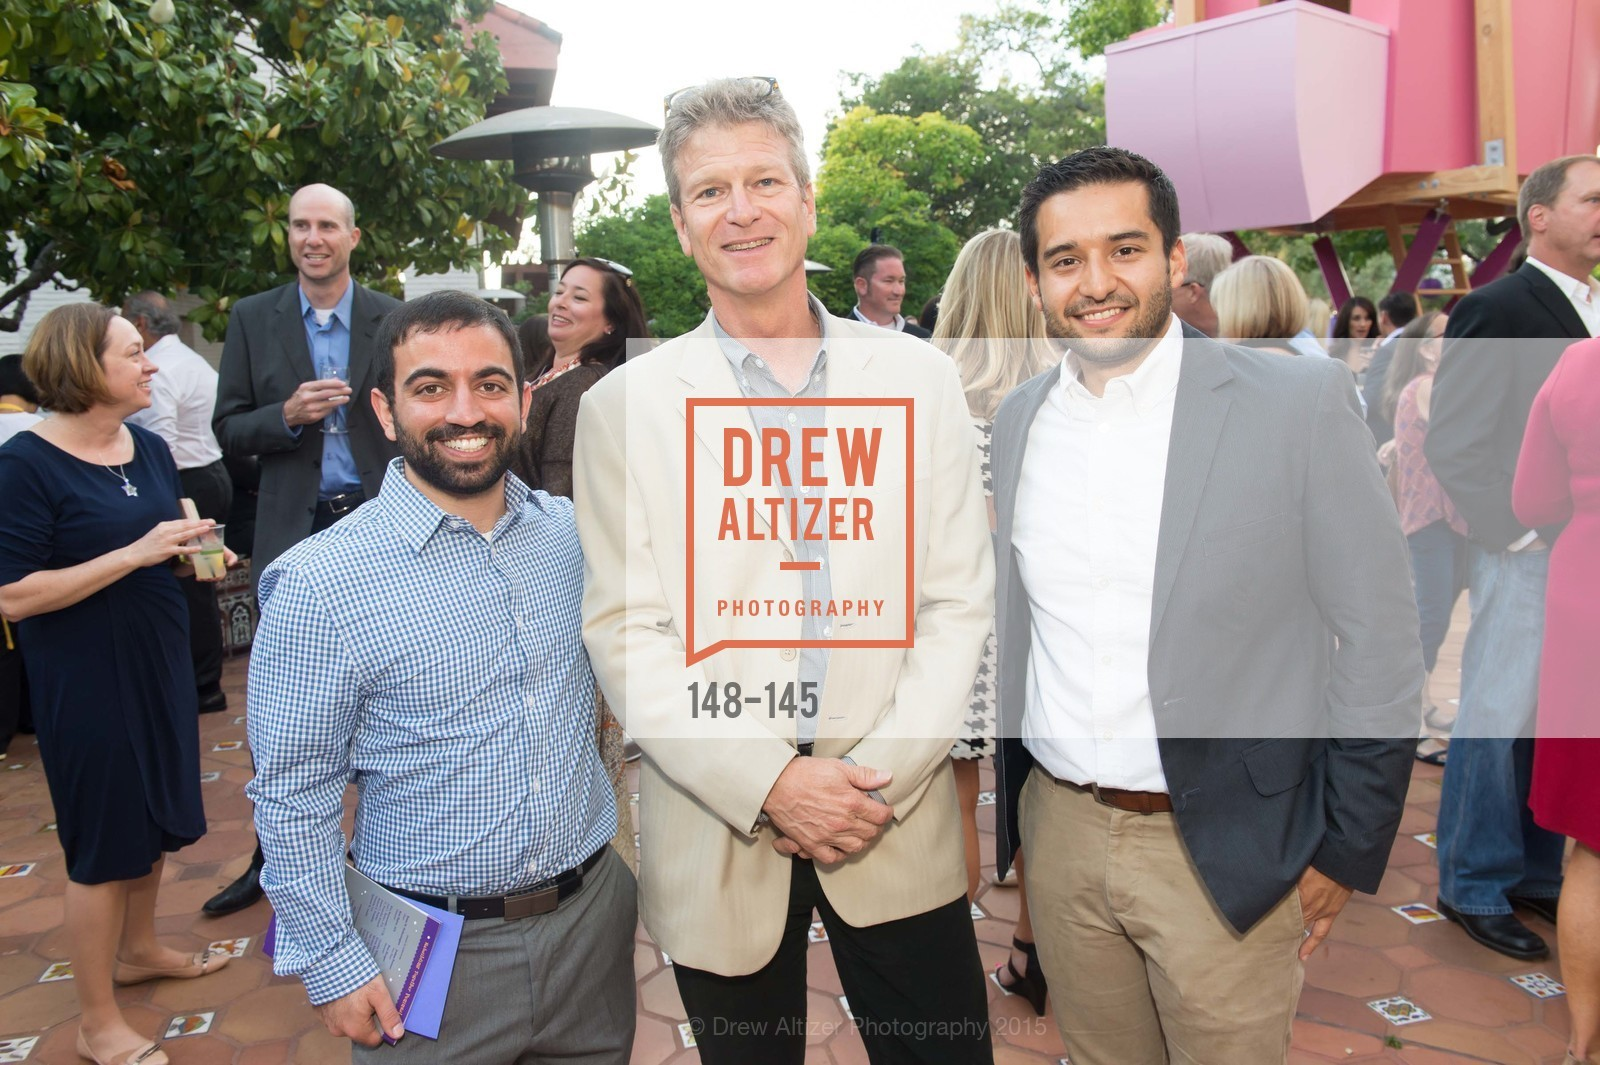 Daniel Maiel, Ken Hayes, Rafael Delgavilla, DREAMS HAPPEN: Playhouse Auction and Gala, Stanford Shopping Center, June 5th, 2015,Drew Altizer, Drew Altizer Photography, full-service agency, private events, San Francisco photographer, photographer california